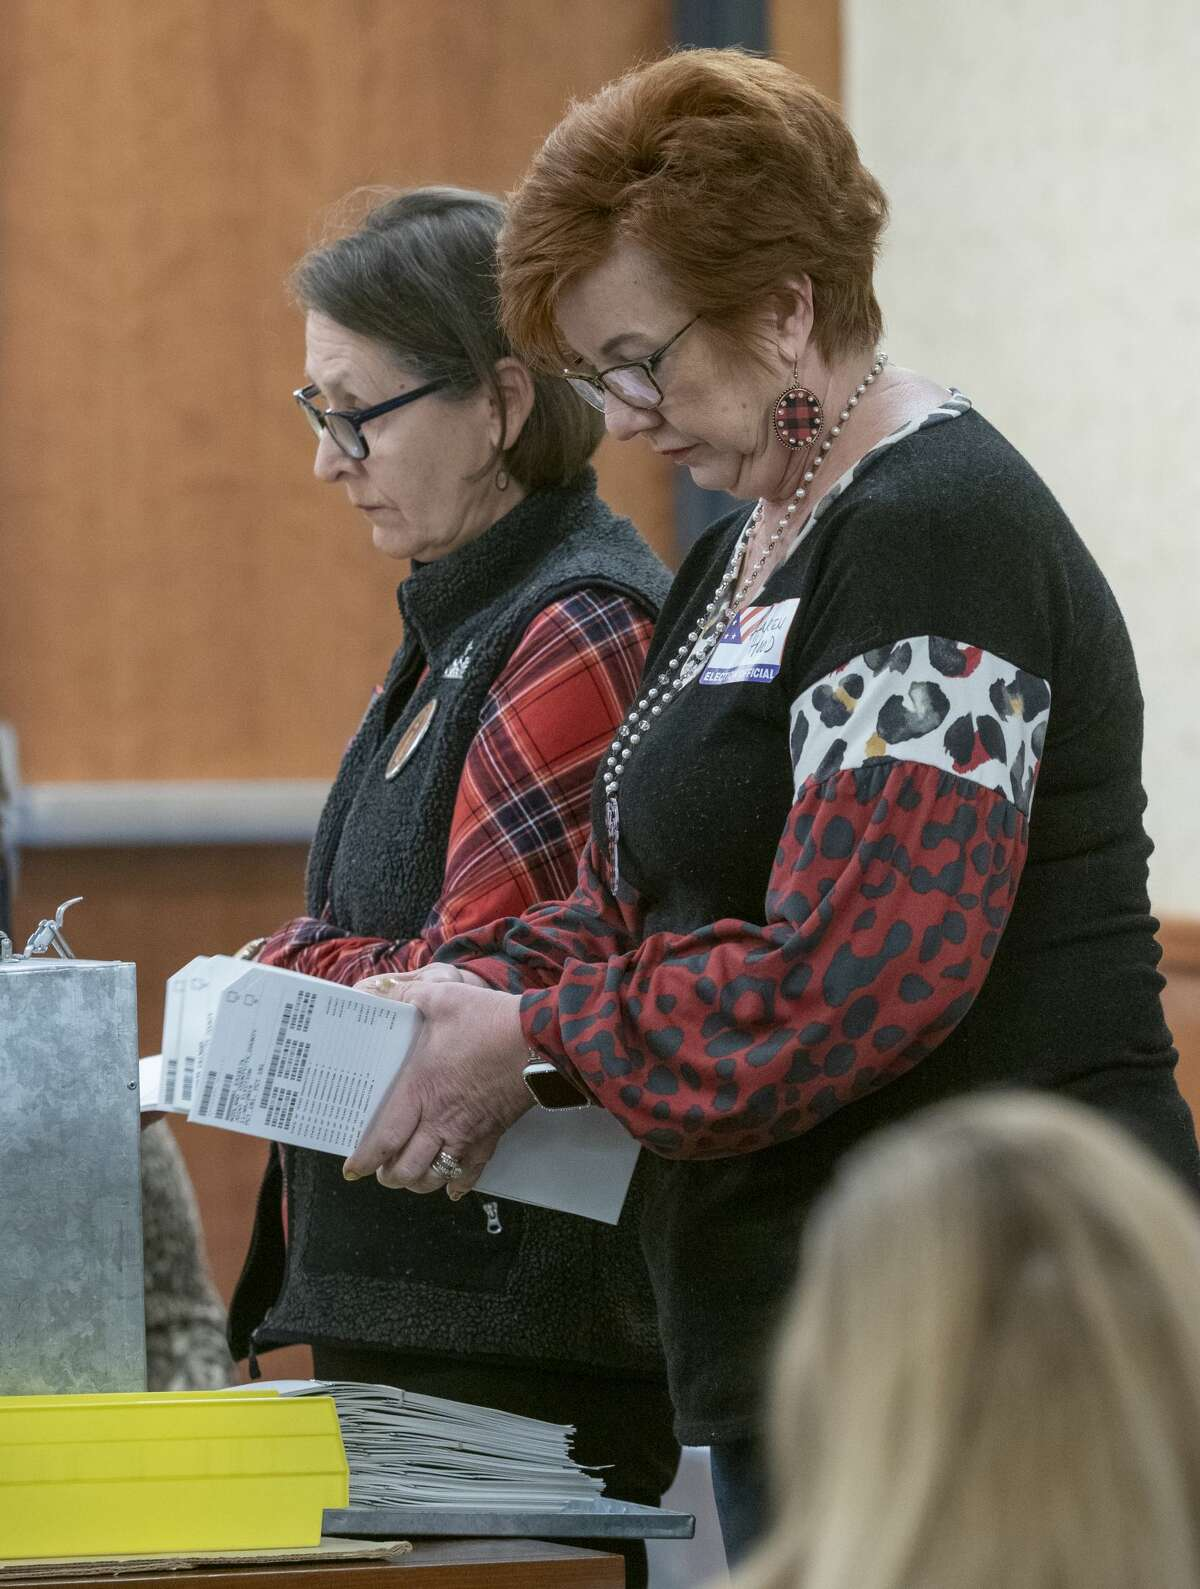 JoAnn Sulak and Karen Hood, election volunteers, manually count ballots as they begin the process of manually counting each ballot to verify a totalon Thursday, Dec. 12, 2019.